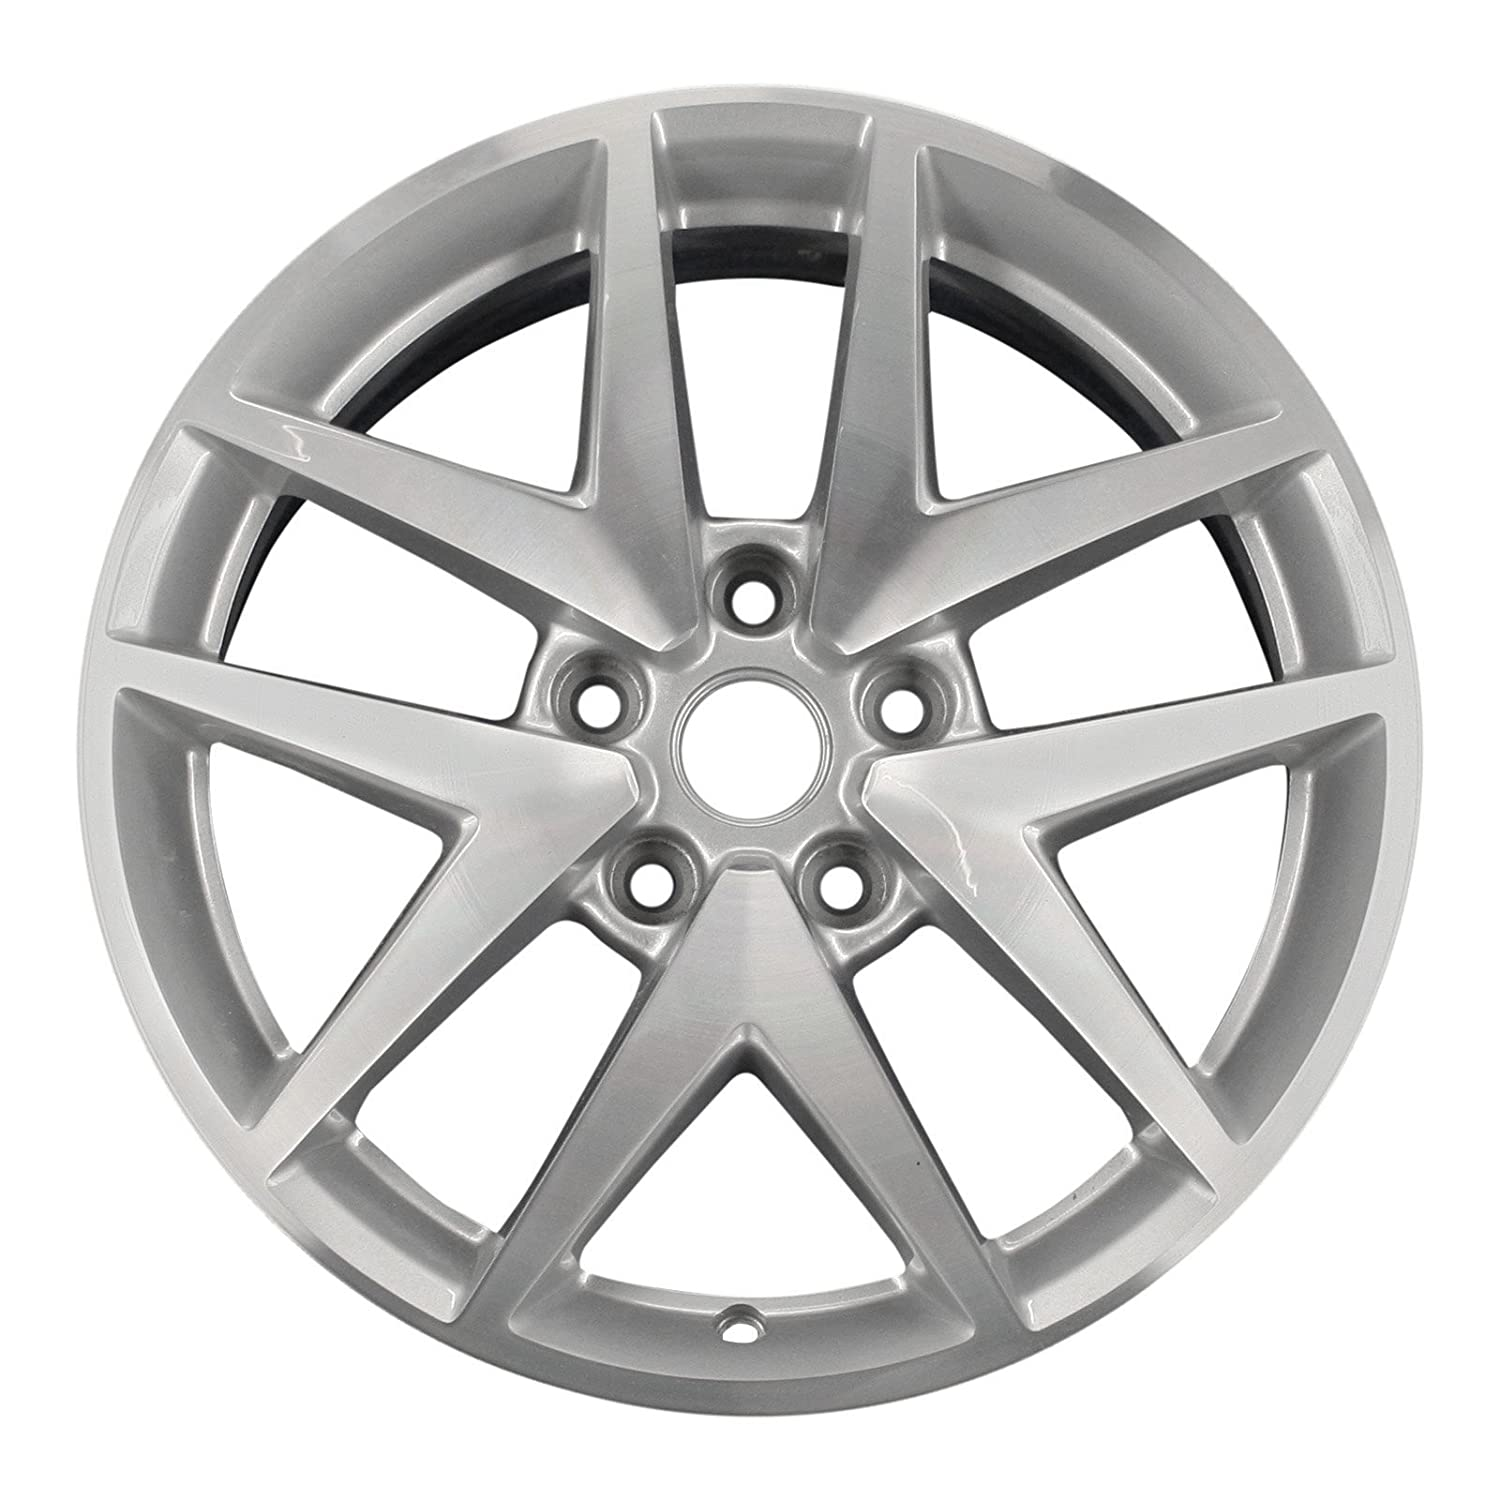 """Amazon.com: New 17"""" Replacement Rim for Ford Fusion 2010-2012 Wheel 3797:  Automotive"""